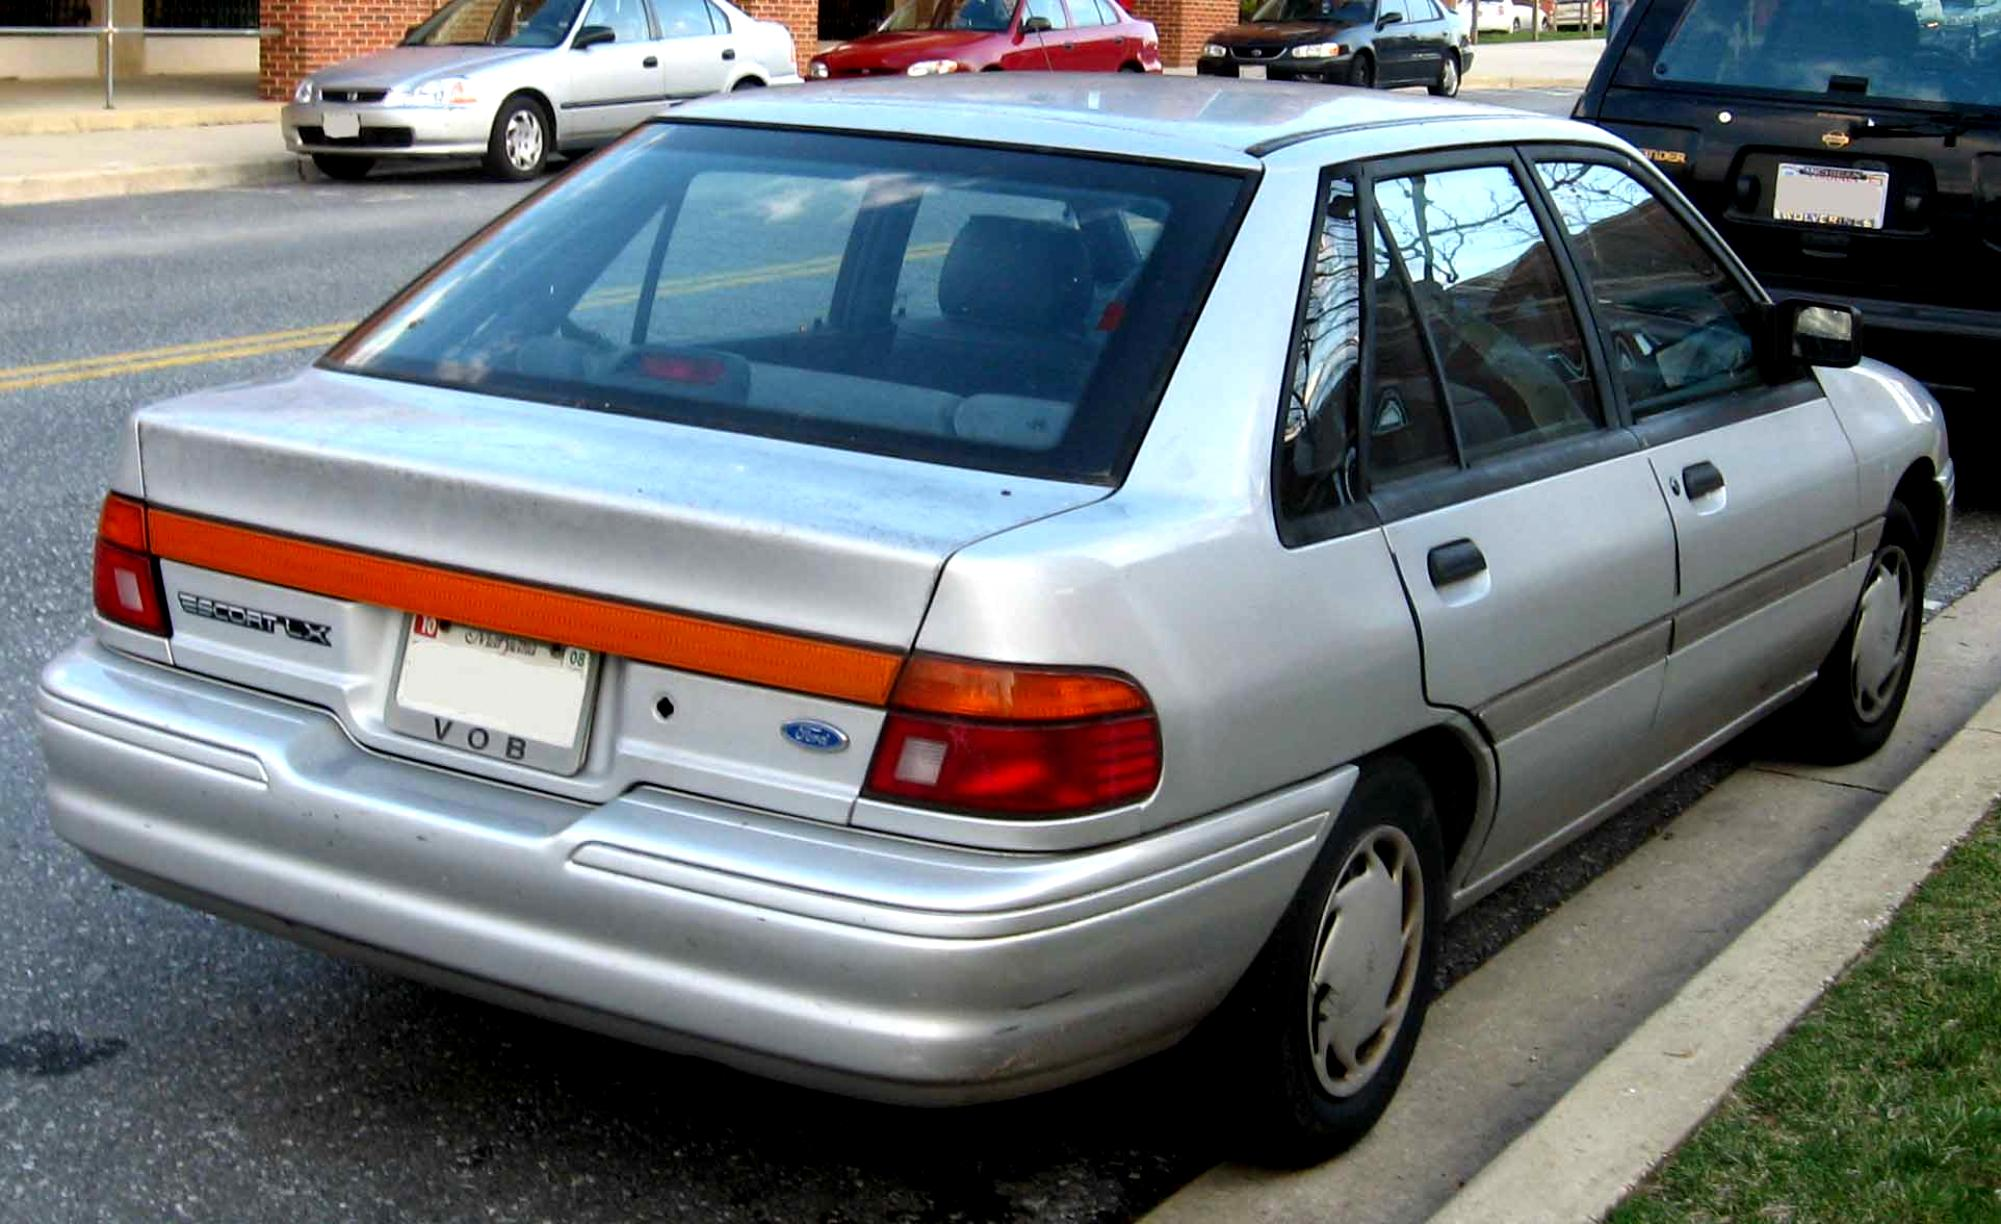 Ford Orion 1990 #23